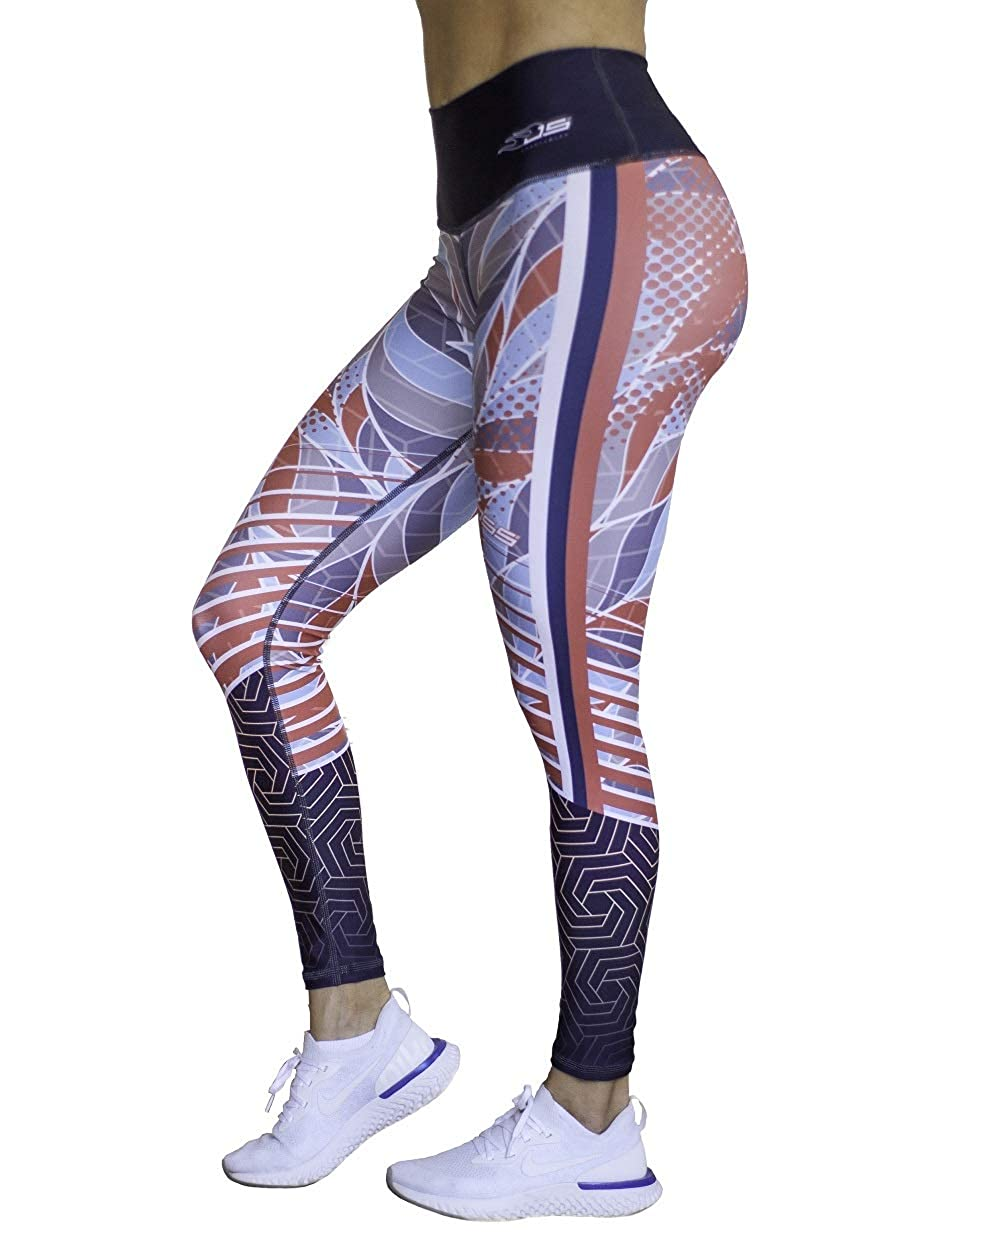 55923dd00d165 Leggings High Waist, Compression, Anti Cellulite, Tummy Control, Workout  Yoga Gym Run Fit Women (Black & Coral 328) at Amazon Women's Clothing store: